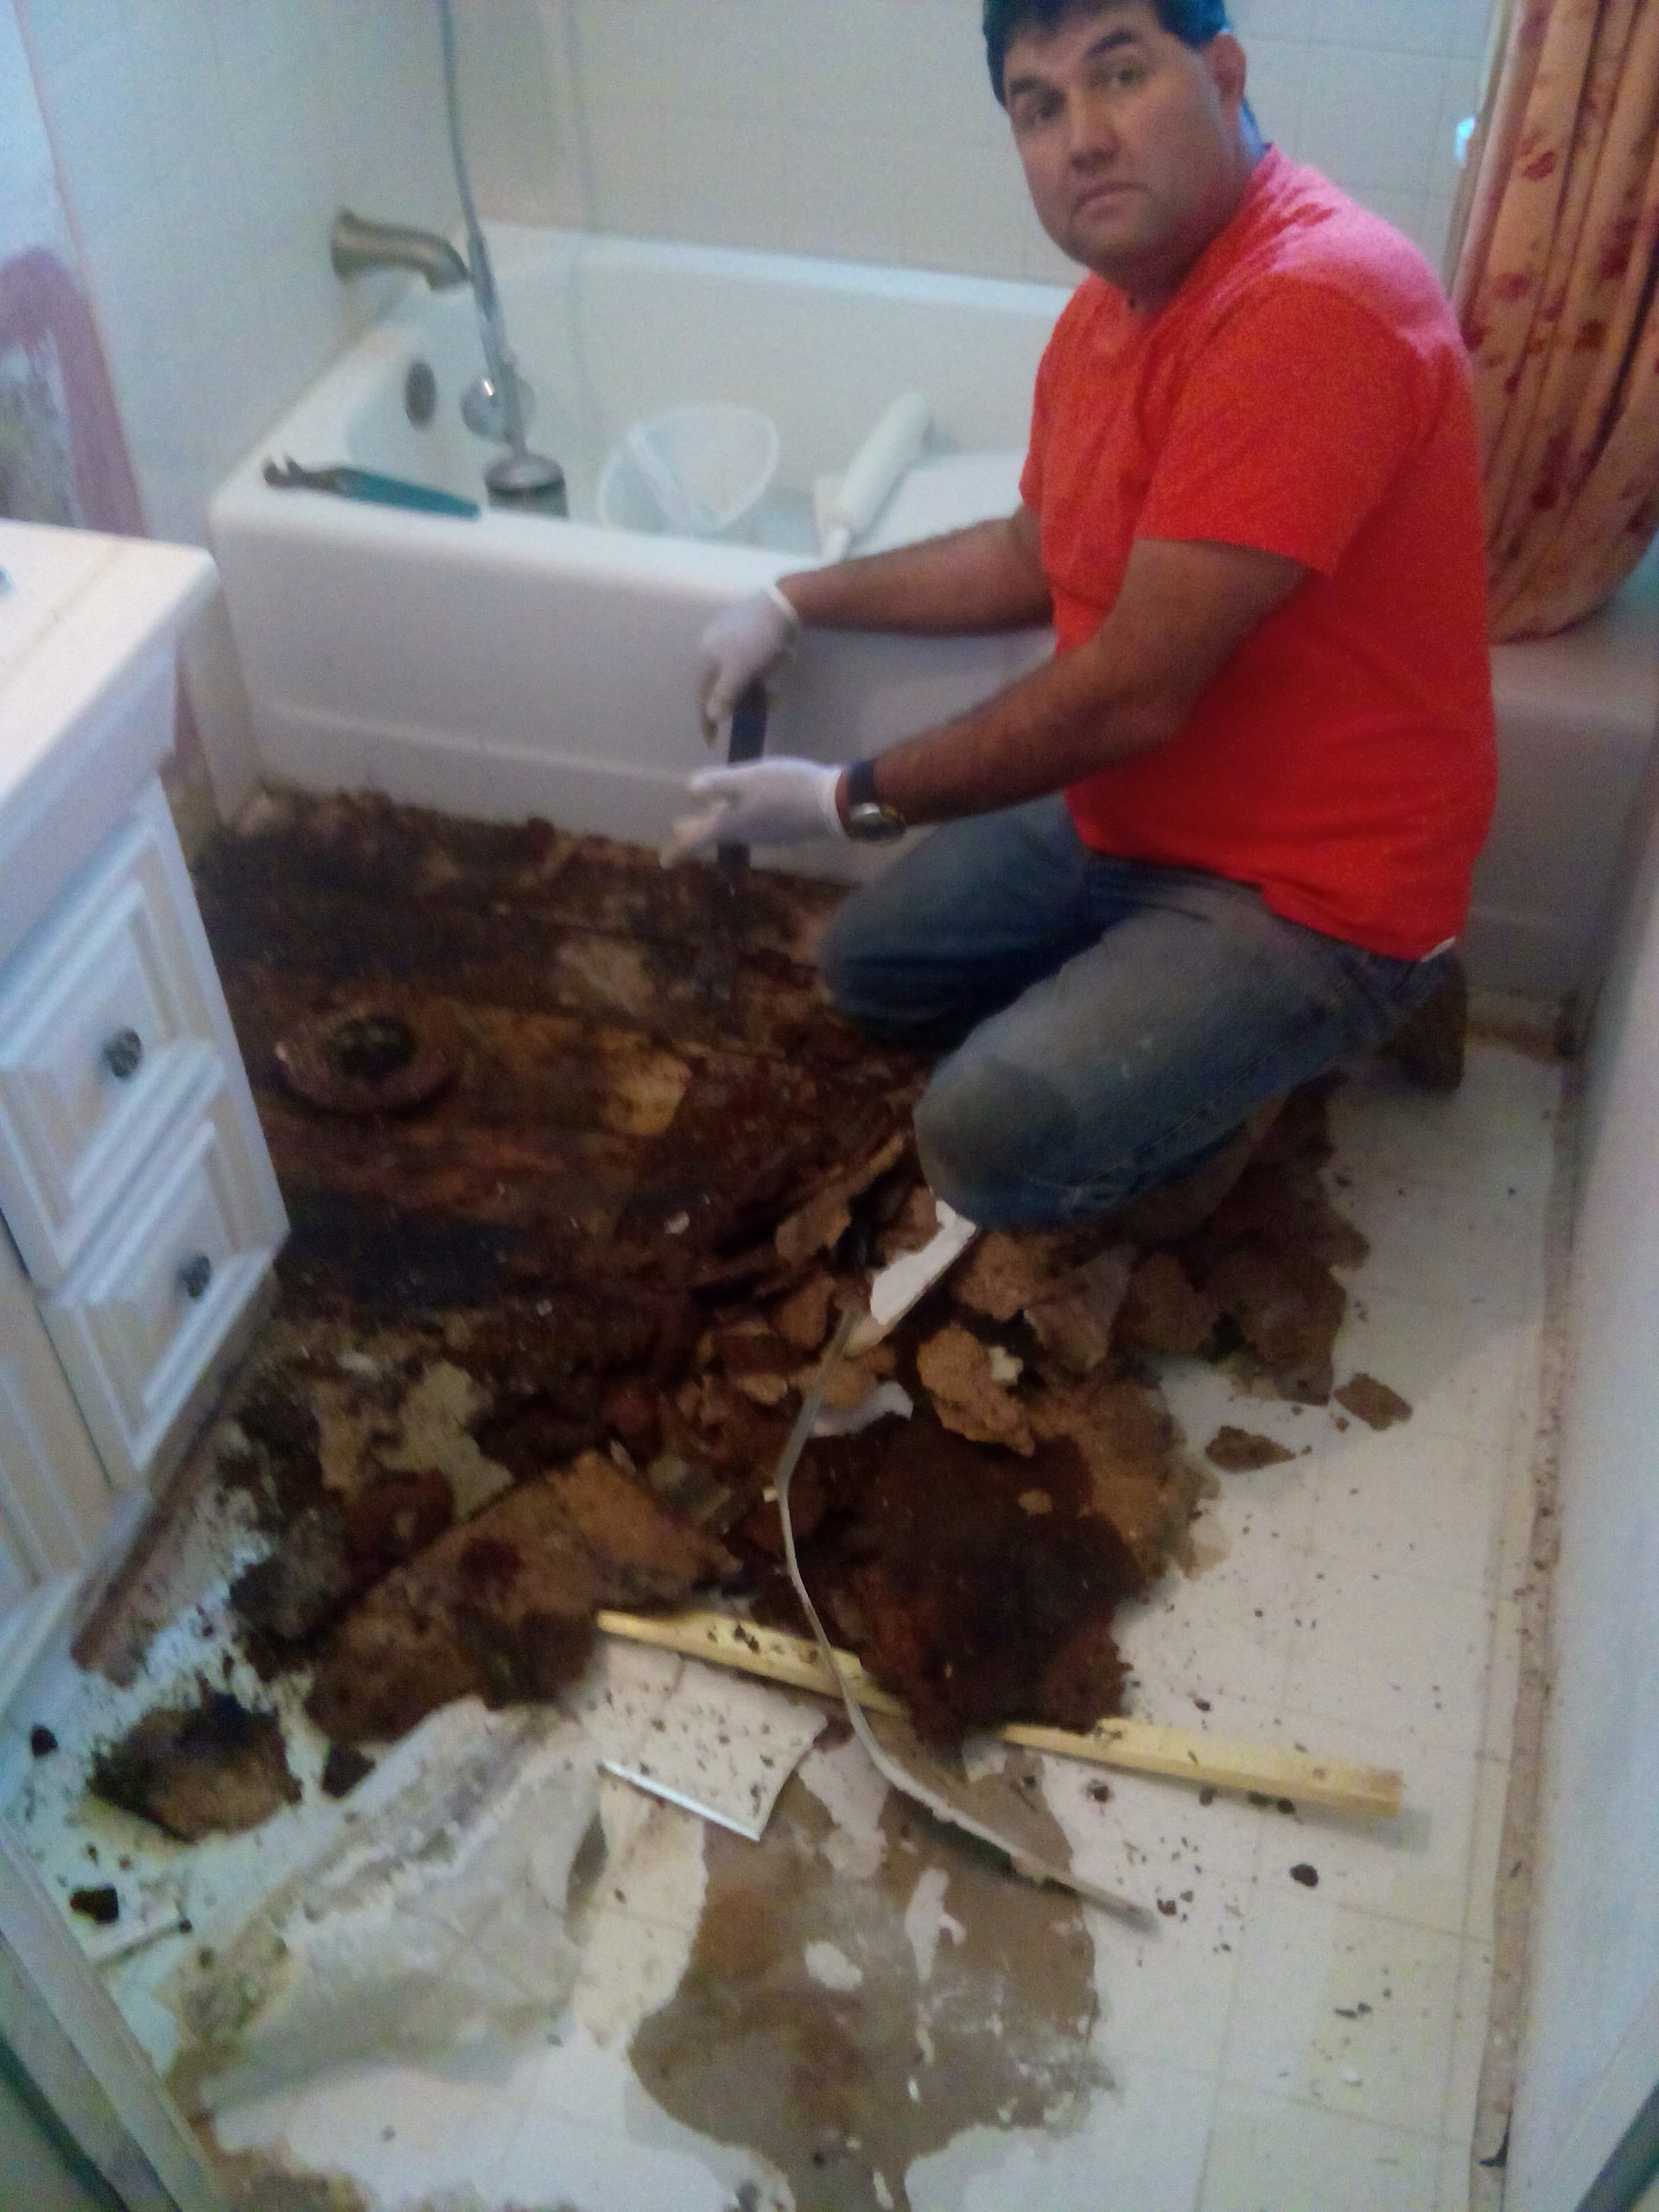 Repair Bathroom Floor Bathroom Floor Repair Rental Unit Alicia Natividad Construction